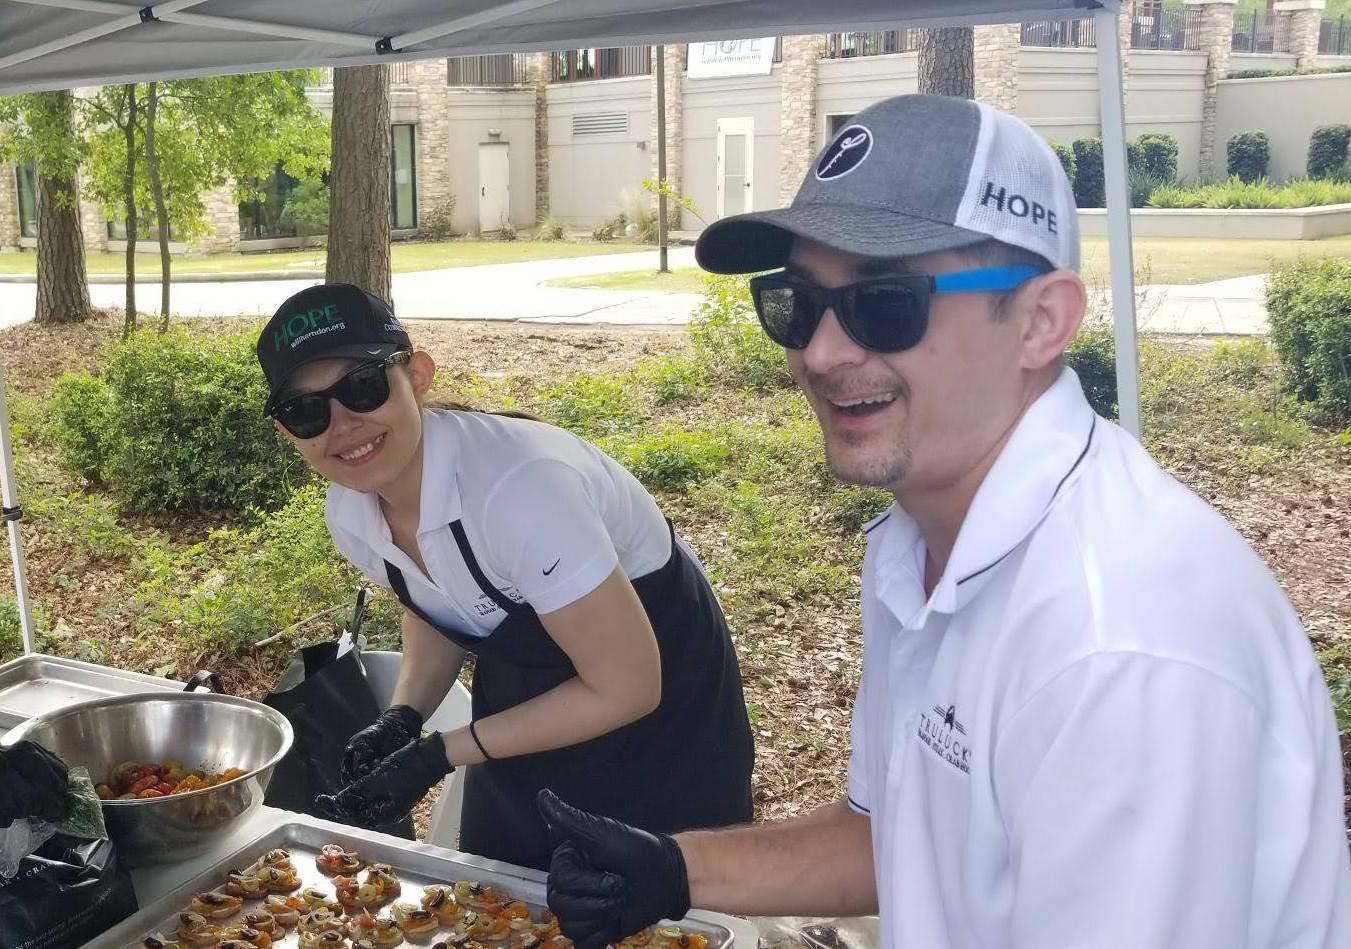 picture of Our staff smiling as they serve food outdoors to community members